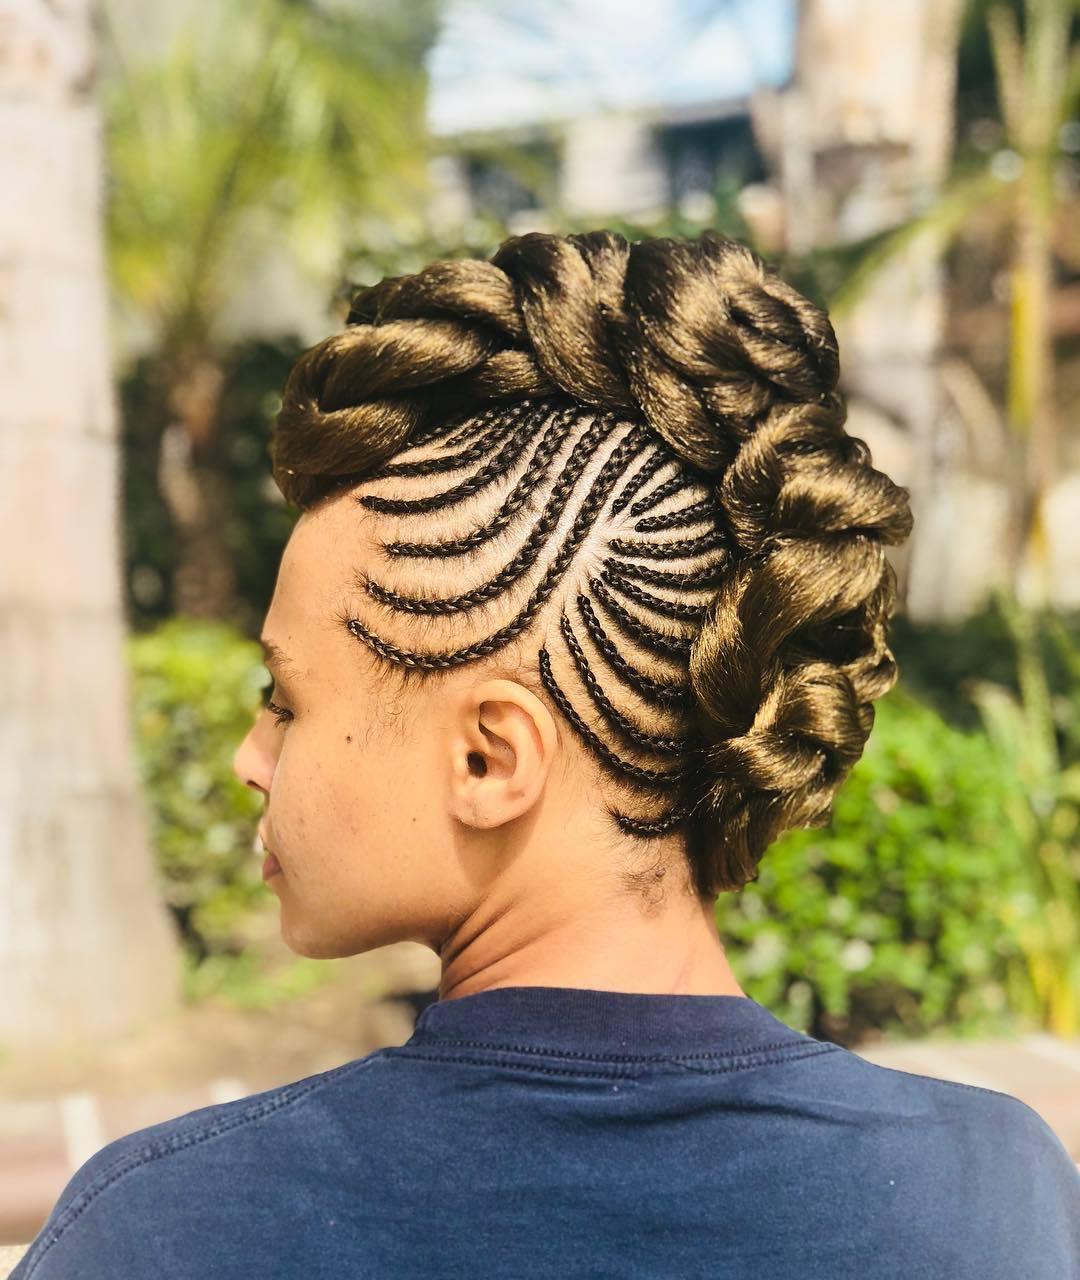 Woman with a cornrowed mohawk hairstyle